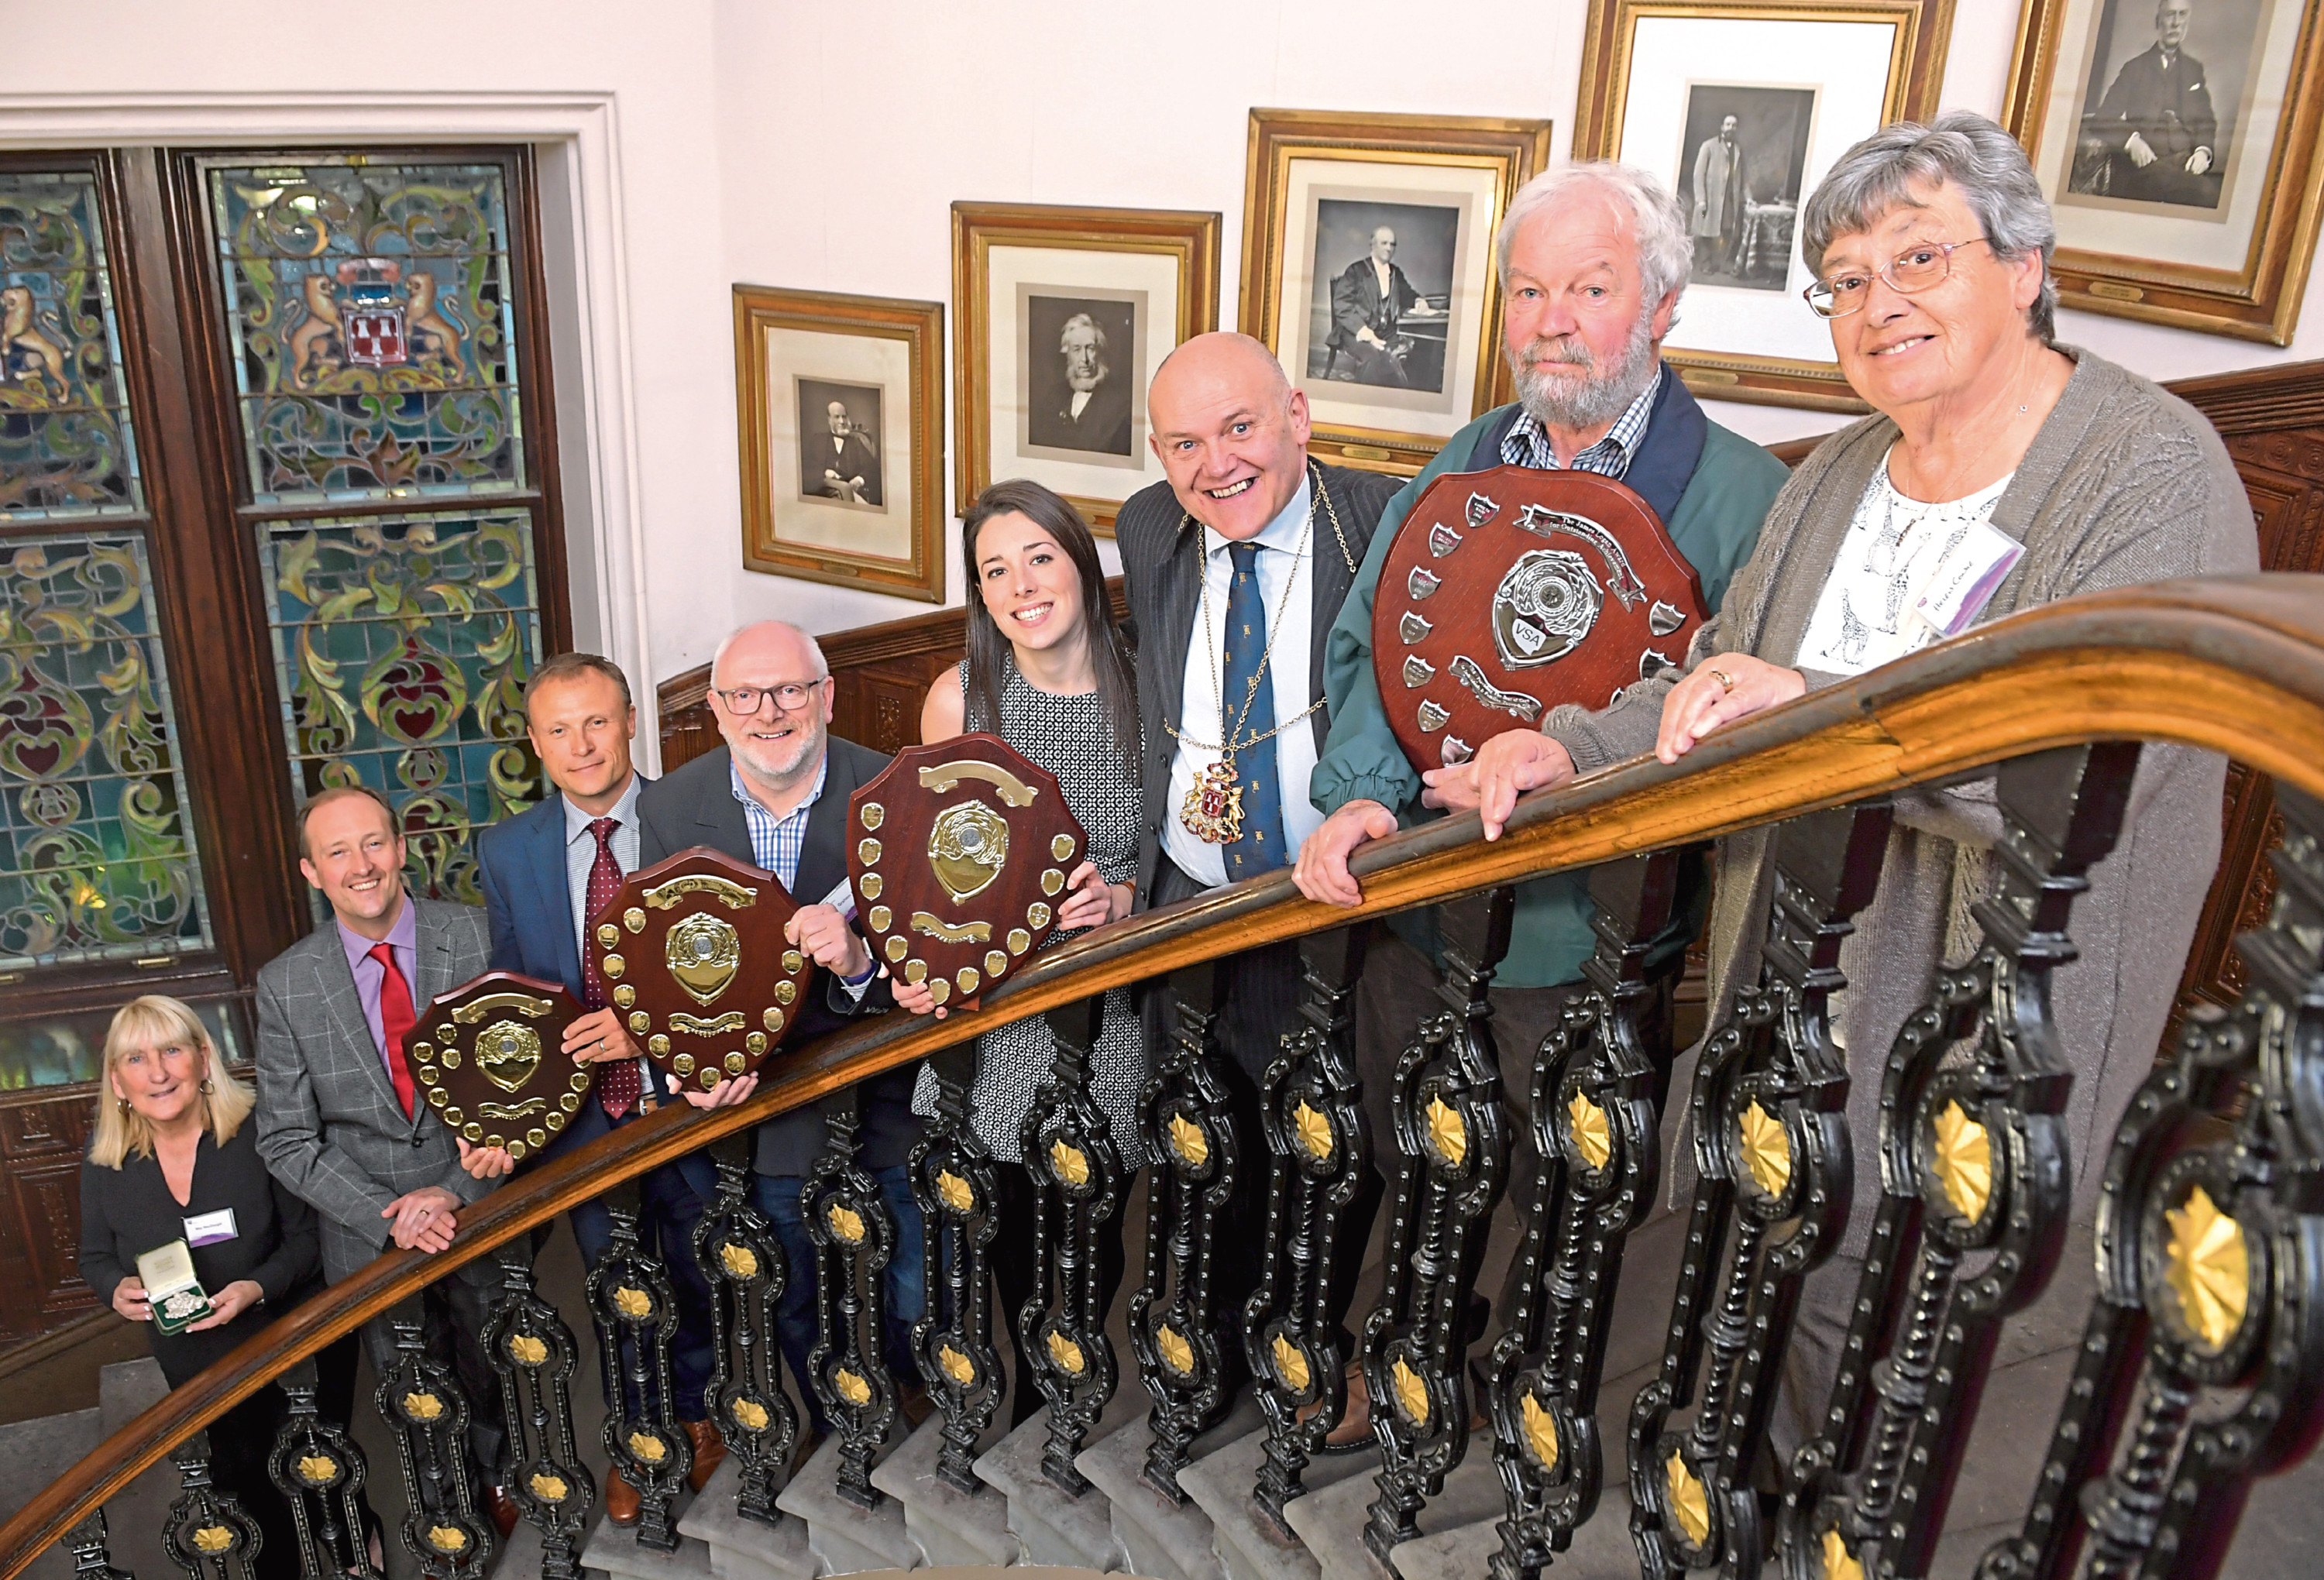 Some of the winners from the annual VSA awards with Lord Provost Barney Crockett